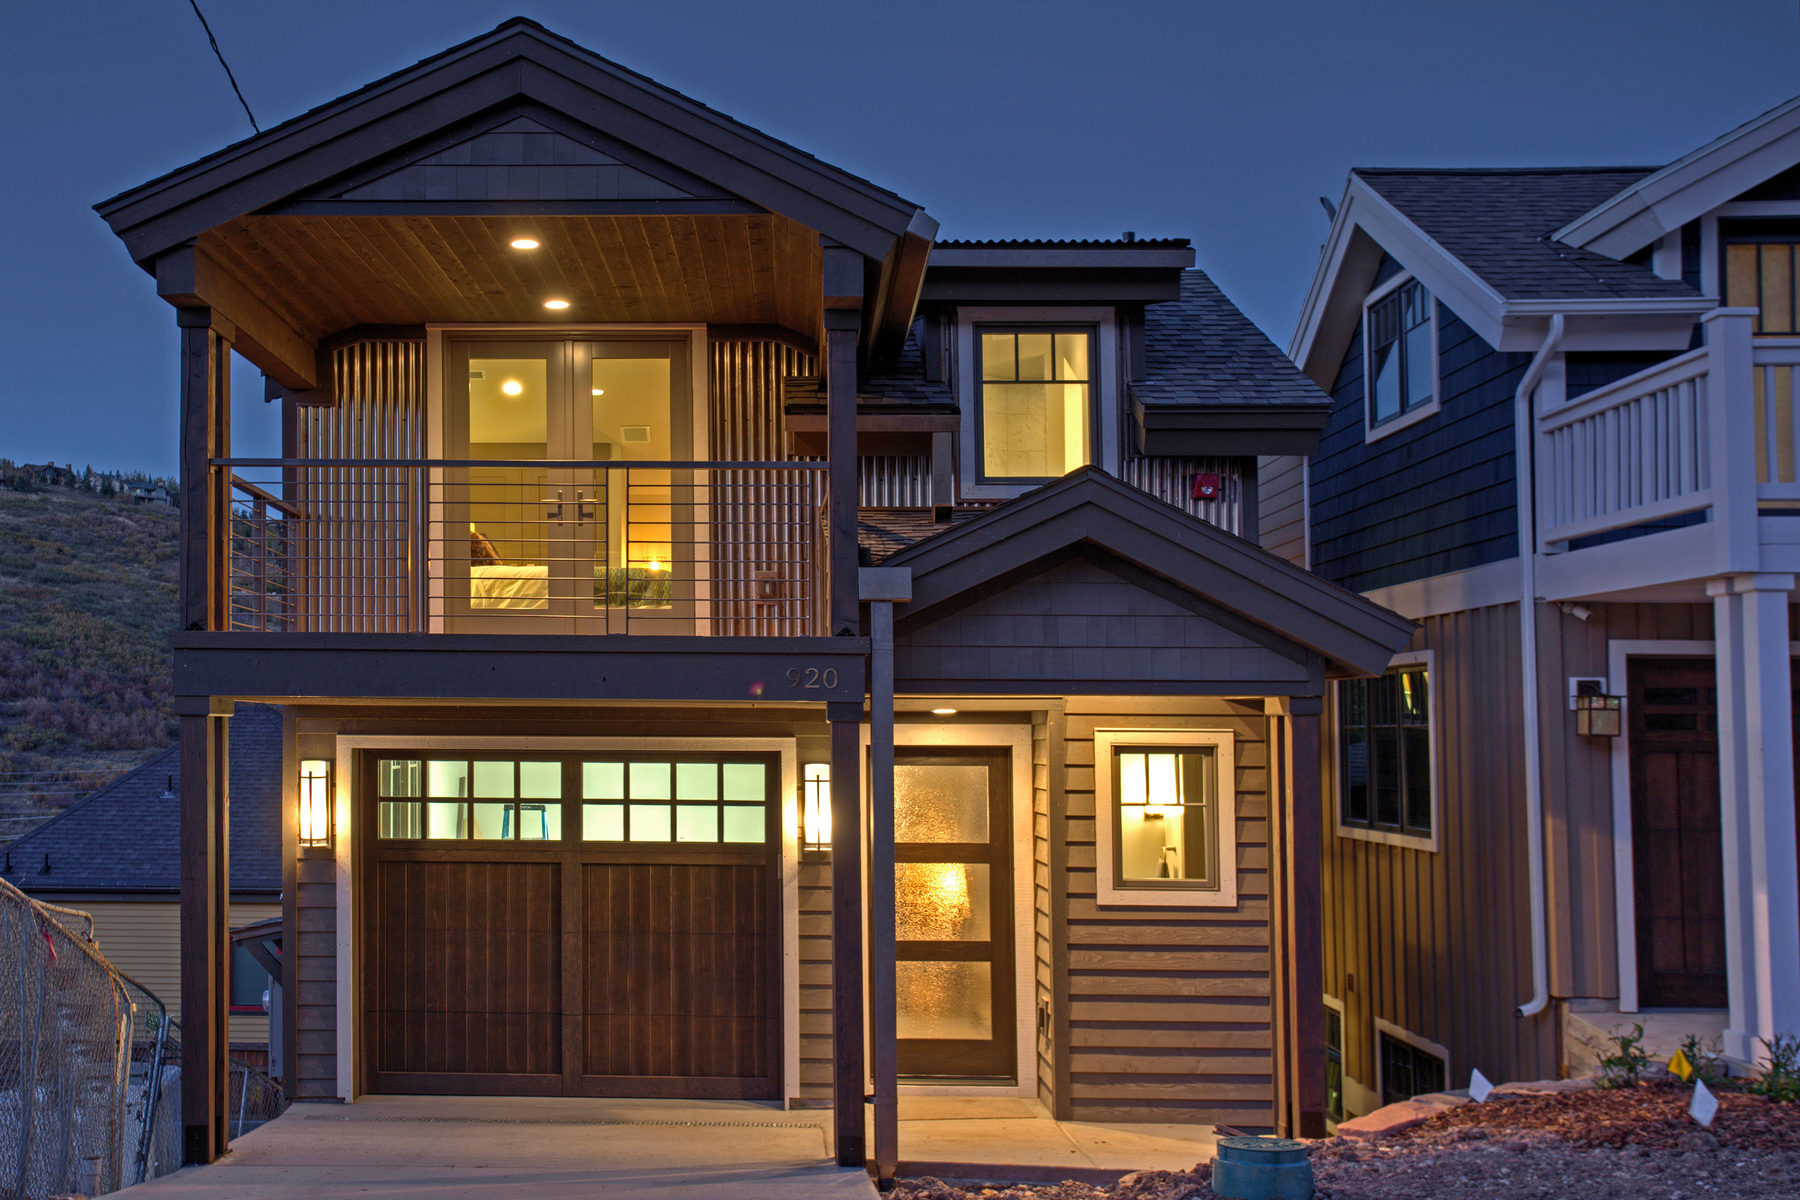 Single Family Home for Sale at Modern Contemporary Design Flare 920 Empire Ave Park City, Utah 84060 United States